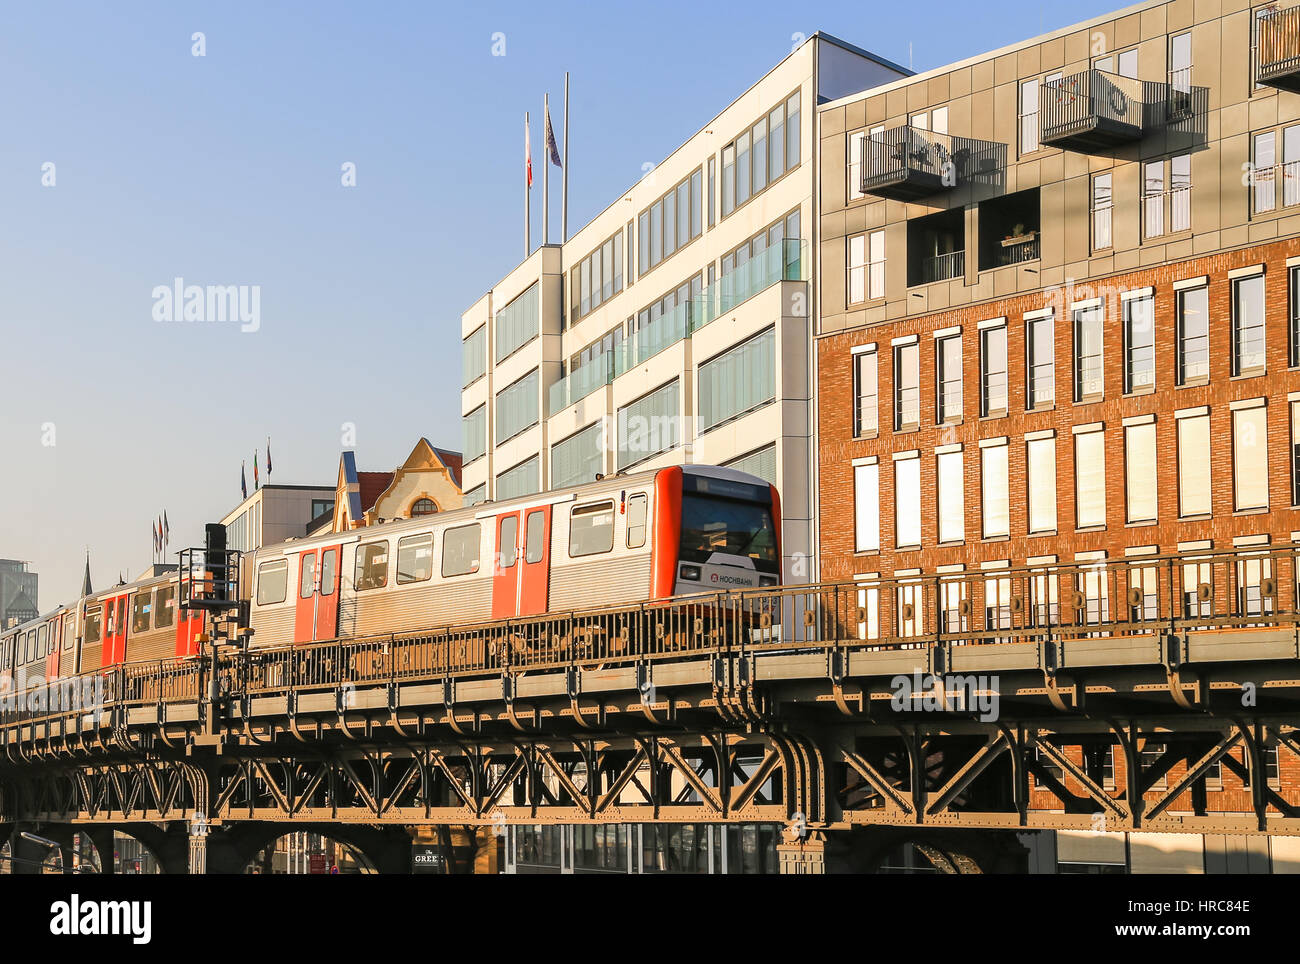 Hamburg, Germany - Februar 15, 2017: Subway train on a bridge in front of buildings near the station Baumwall. Stock Photo